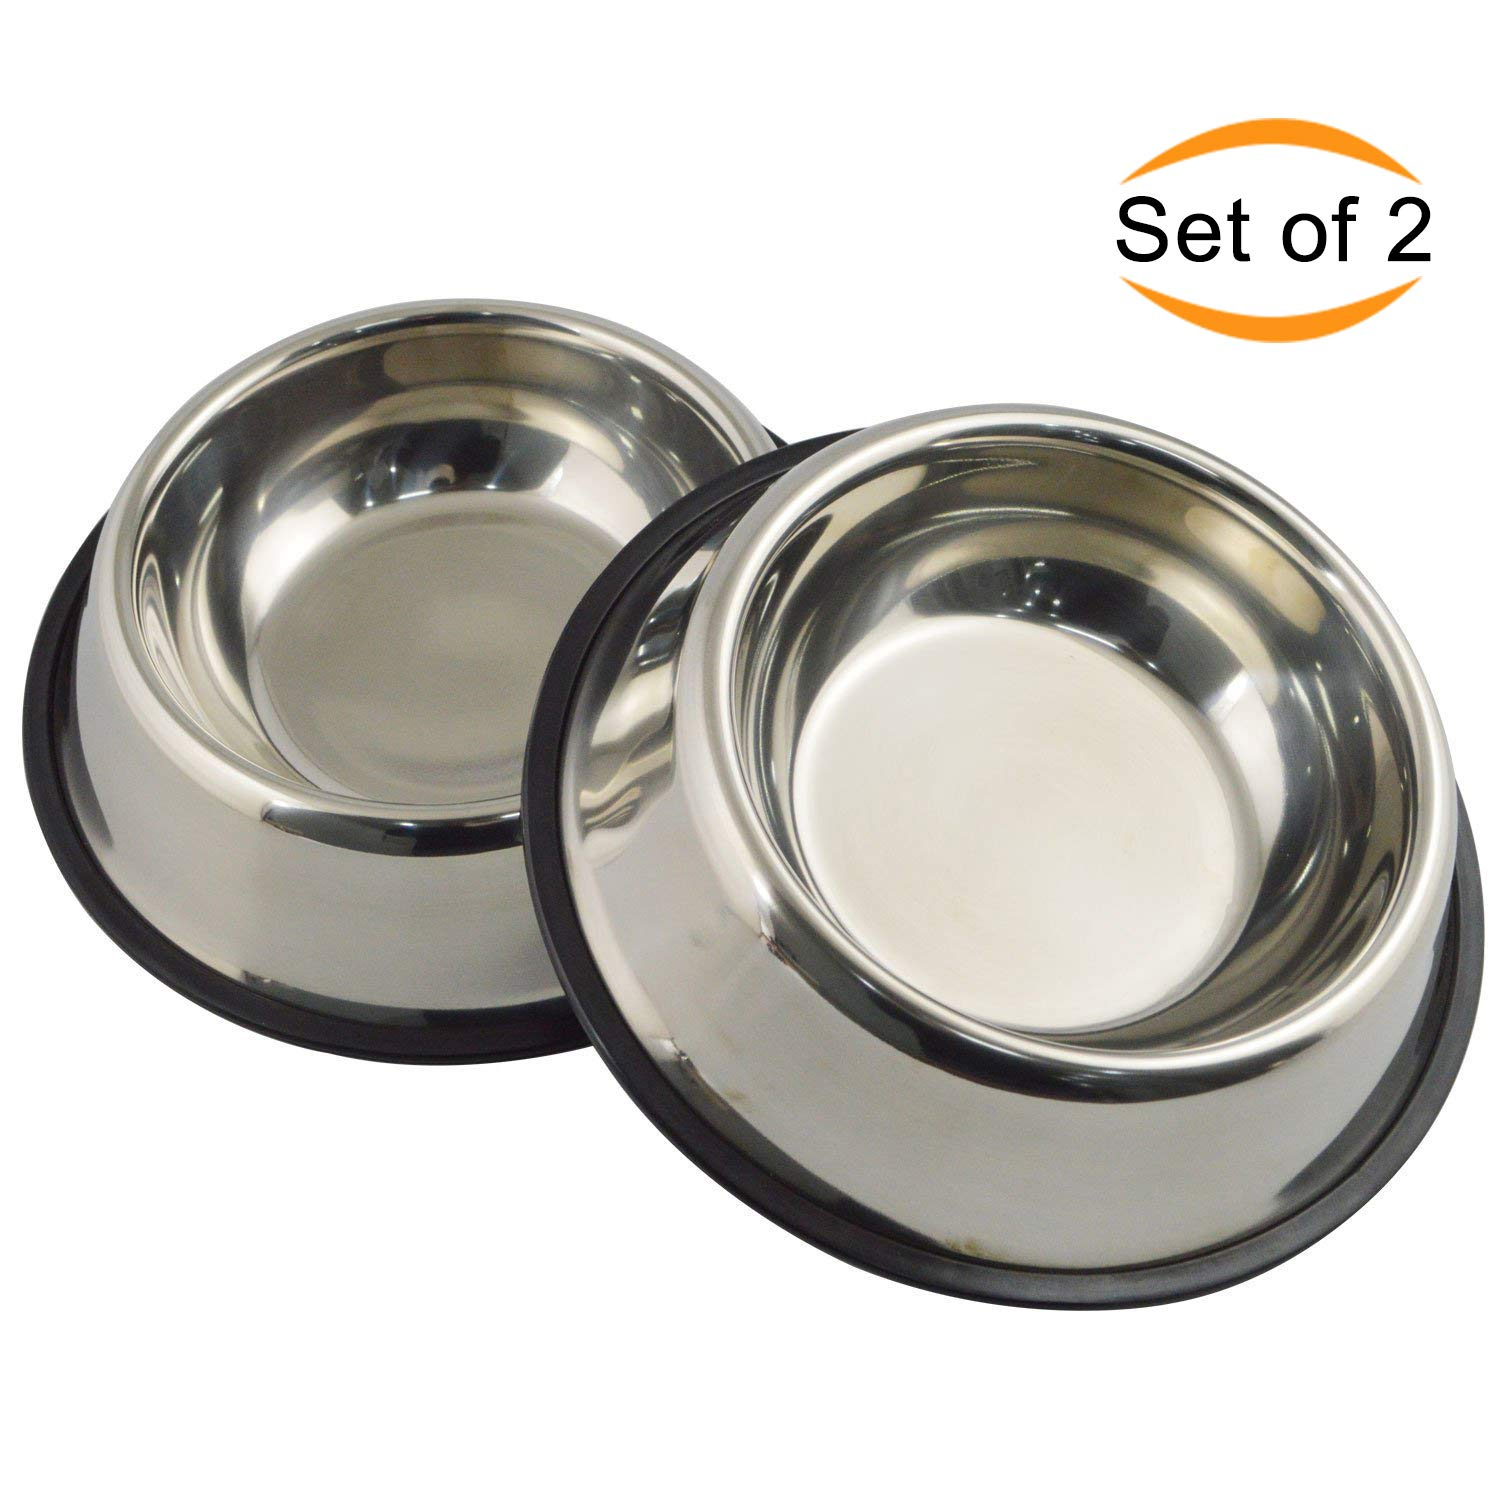 Mlife Stainless Steel Dog Bowl with Rubber Base for Small/Medium/Large Dogs, Pets Feeder Bowl and Water Bowl Perfect Choice (Set of 2) M